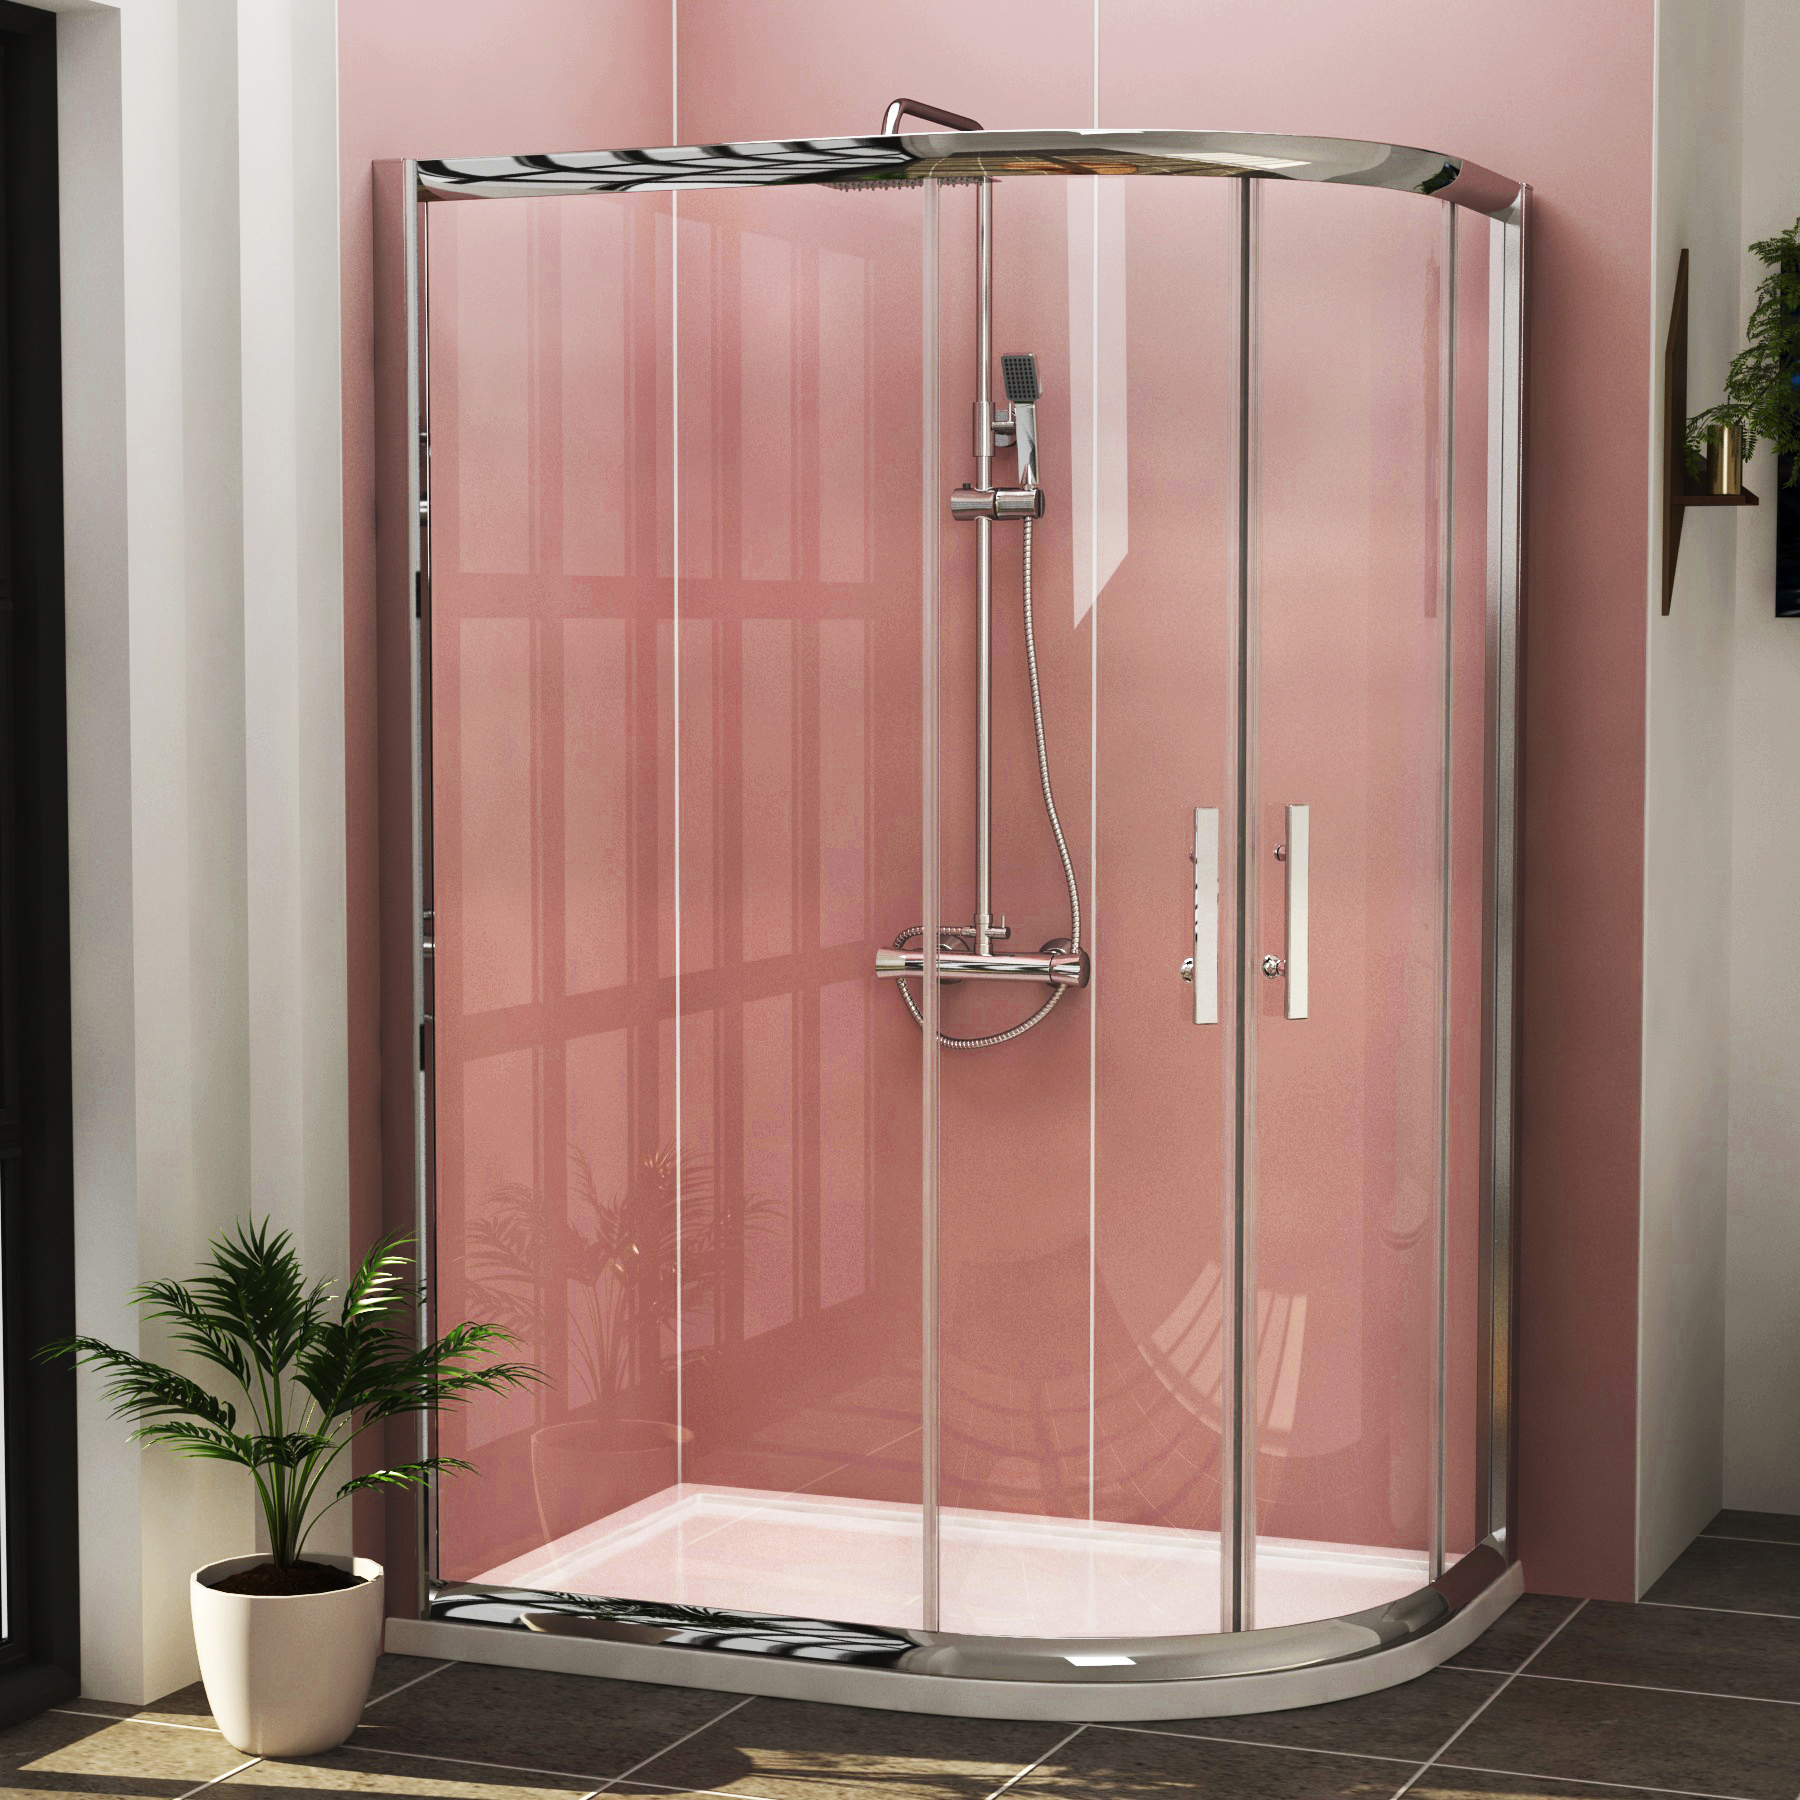 8mm Curved Walk in Shower Enclosure Easy Clean Glass 1200 x 800mm ...